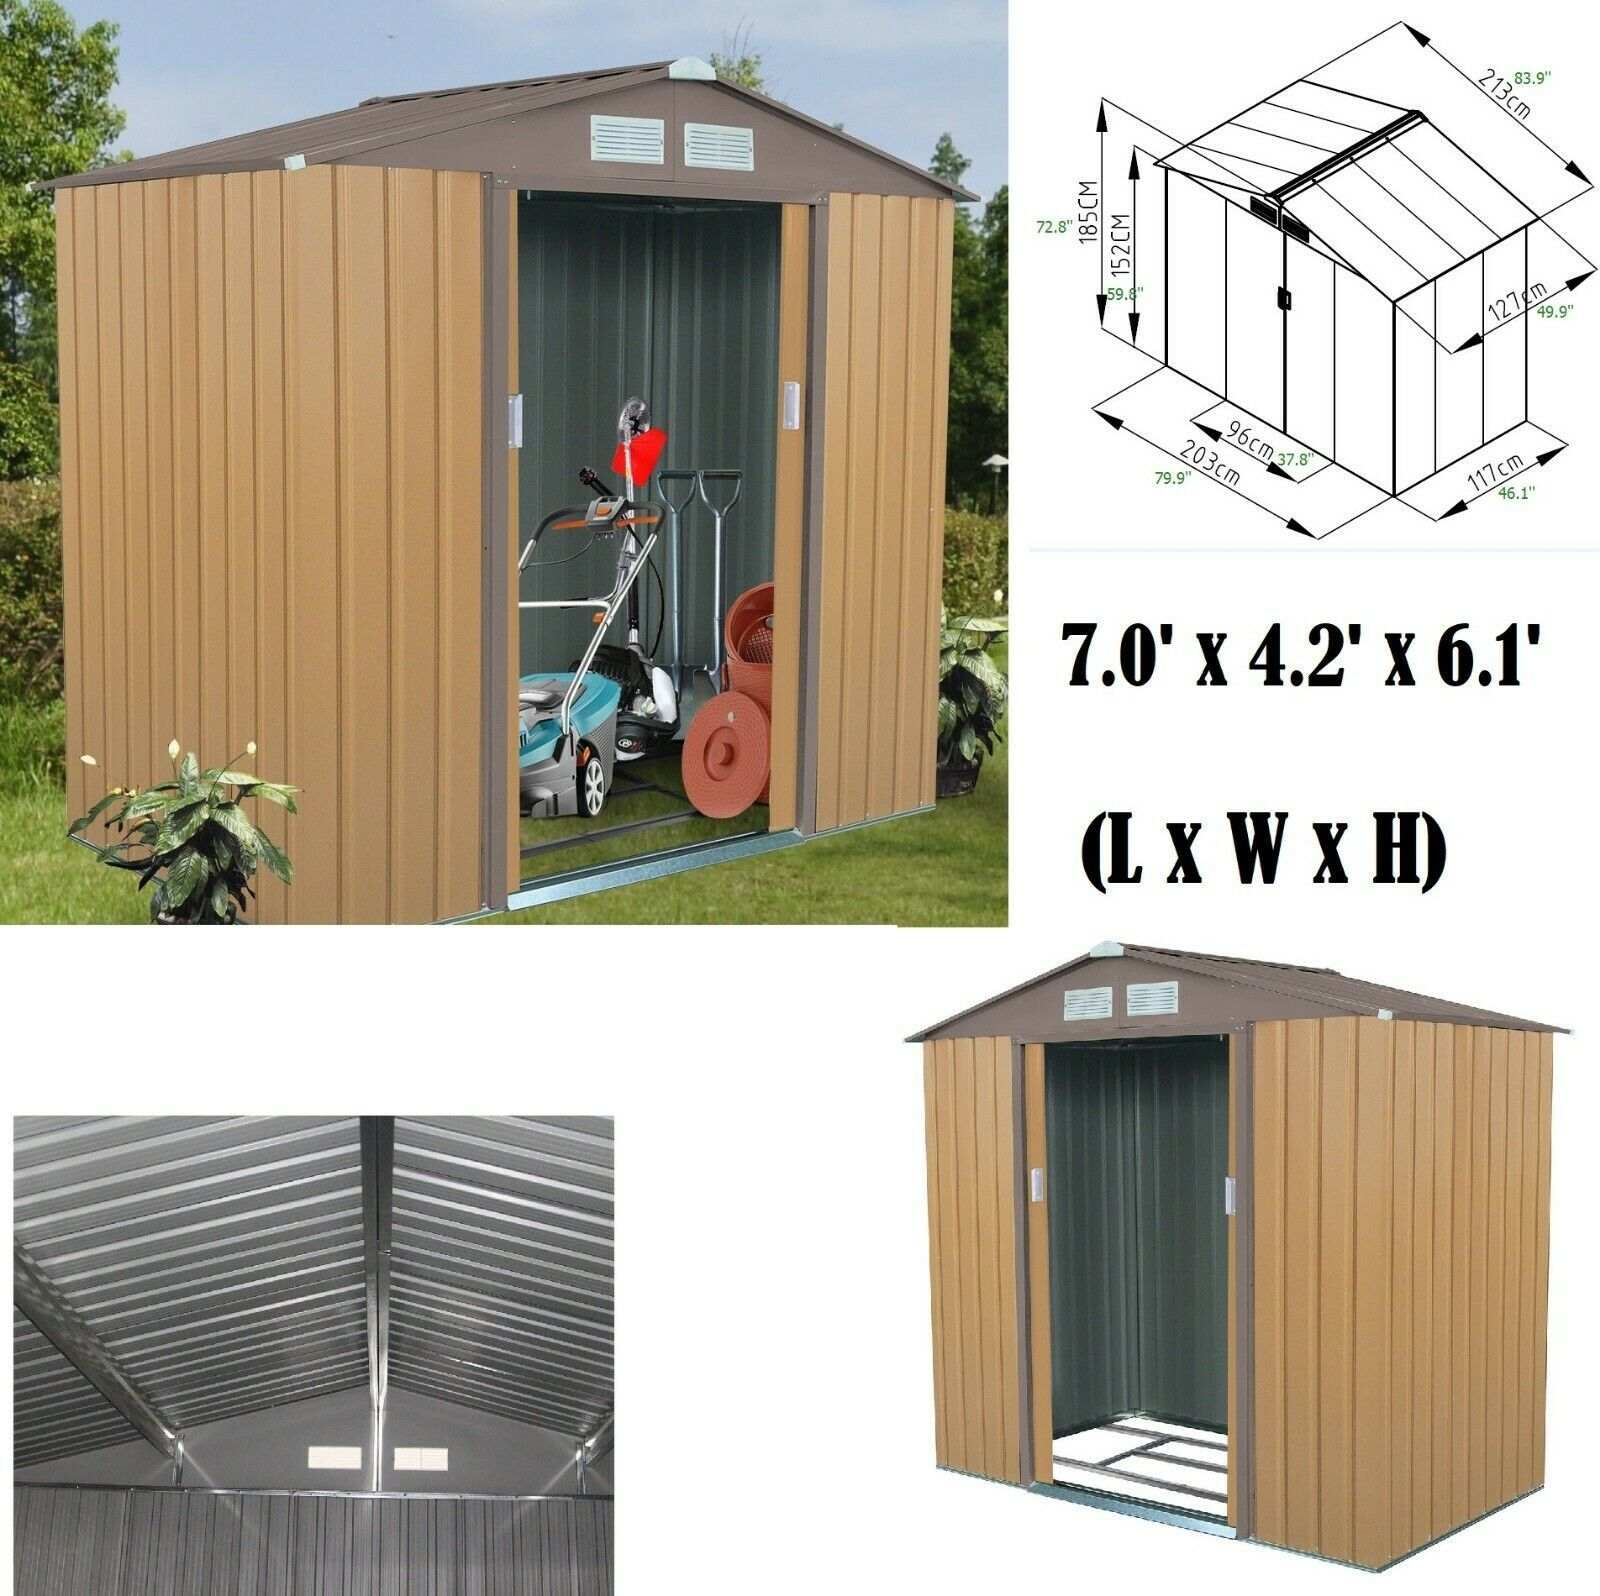 This Is An 8x10 Shed With Cedar Siding With A Sliding Door Backyard Sheds Backyard Shed Studio Shed